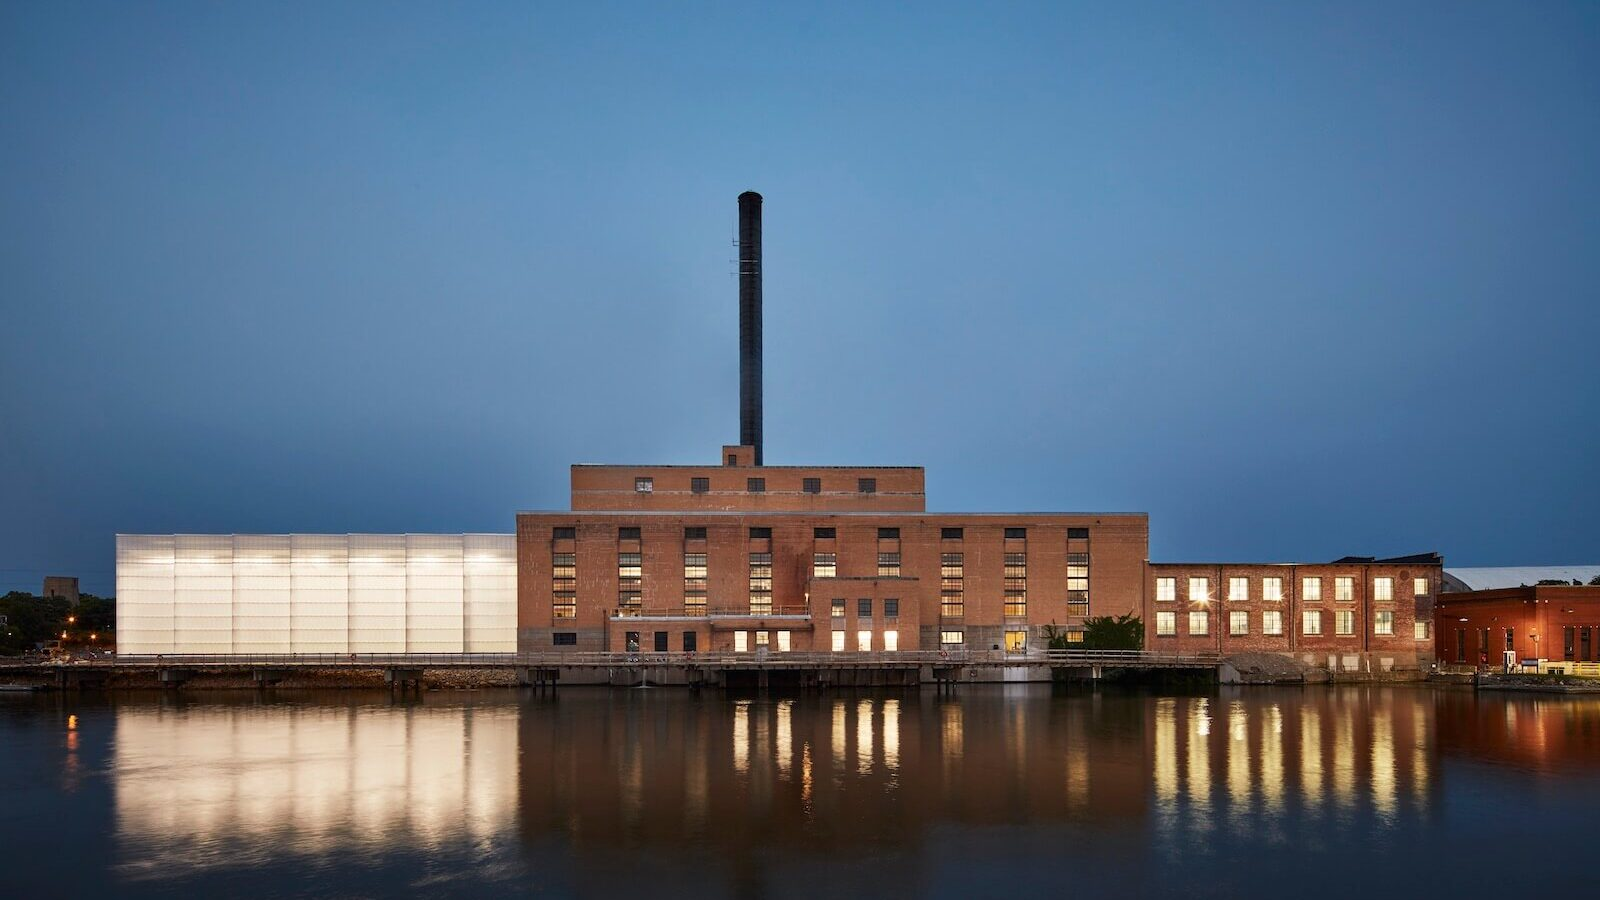 Studio Gang Reimagines a Wisconsin Coal Plant